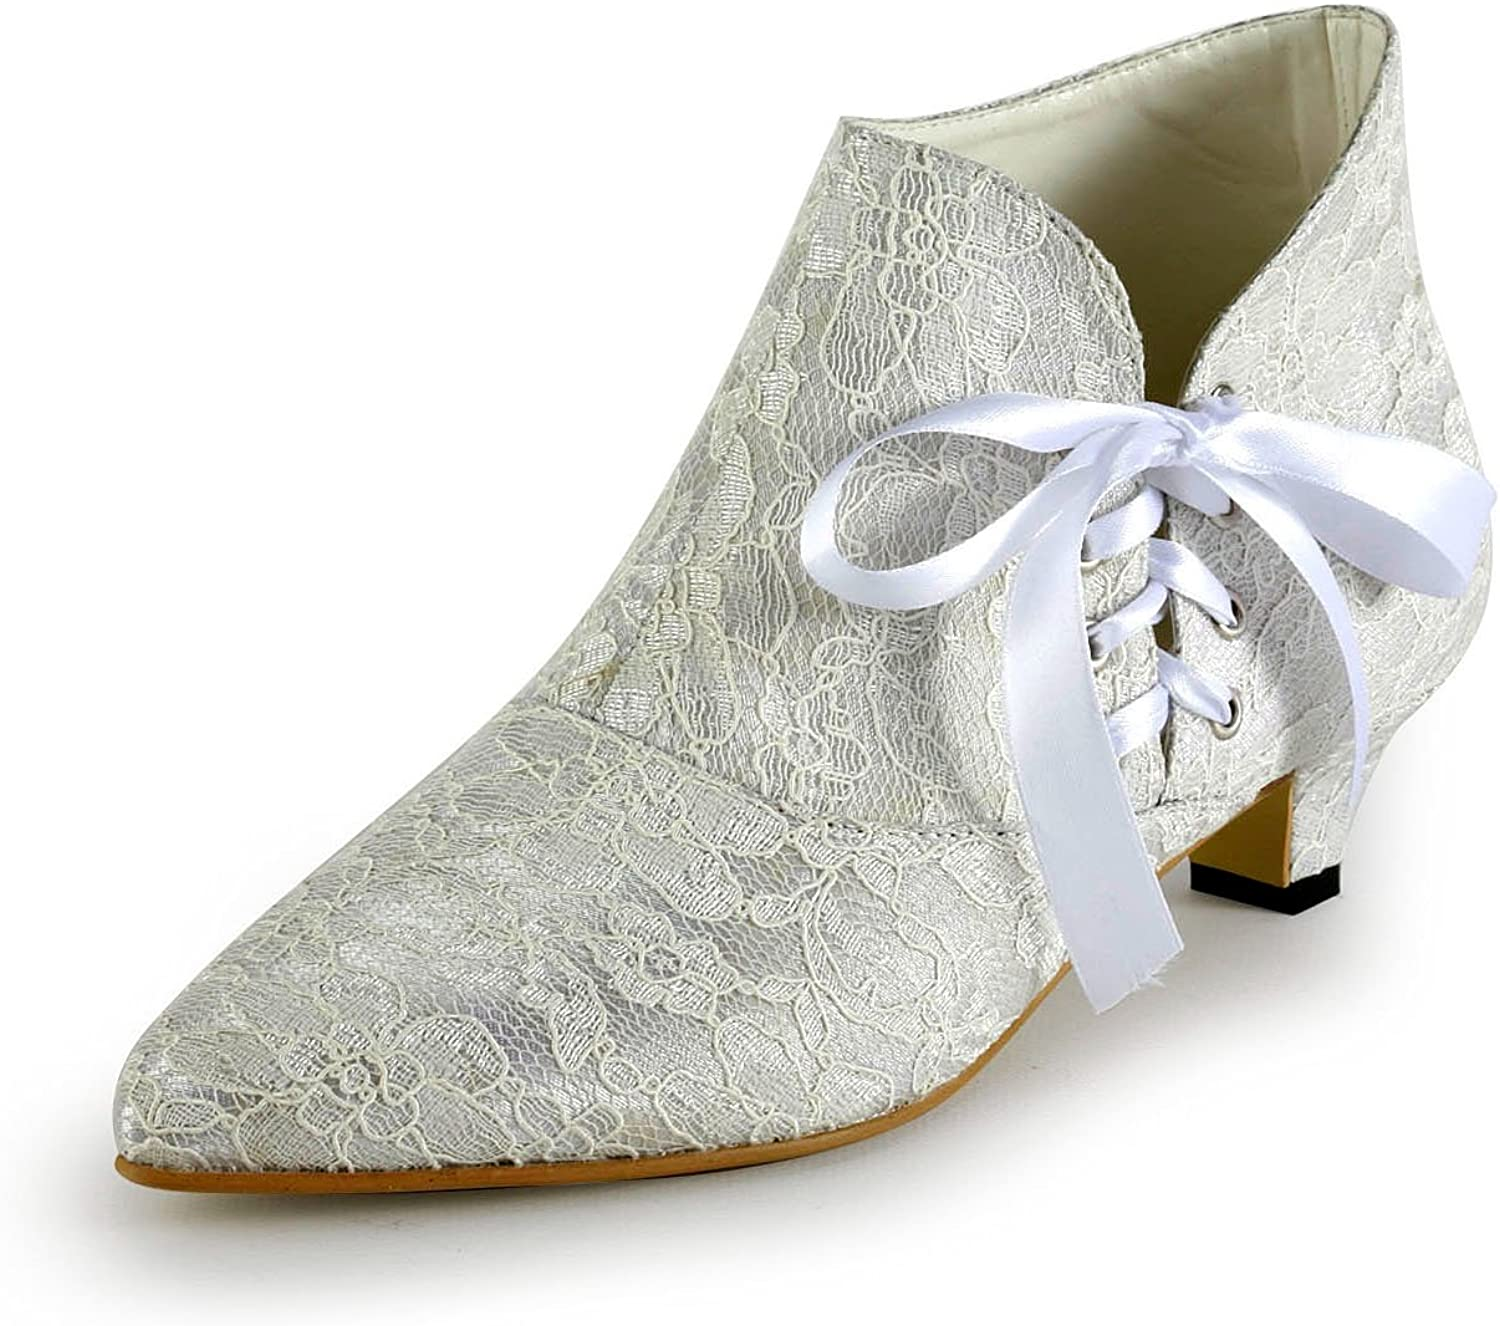 Minitoo TH12122 Women's Fashion Kitten Heel Lace Bridal Wedding Ankle Boots